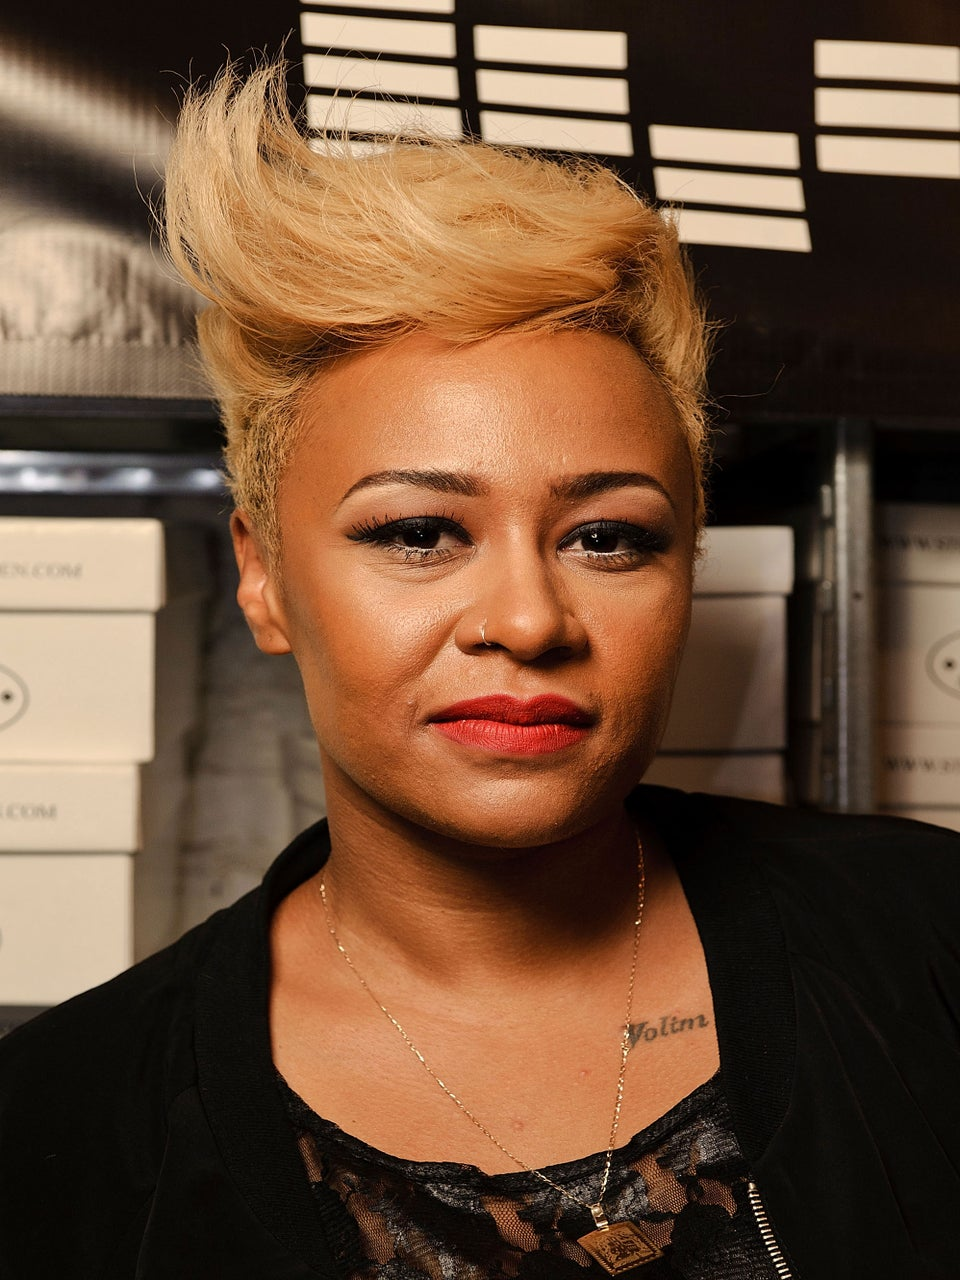 EXCLUSIVE: UK Singer Emeli Sande on Her American Debut, 'Our Version of Events'